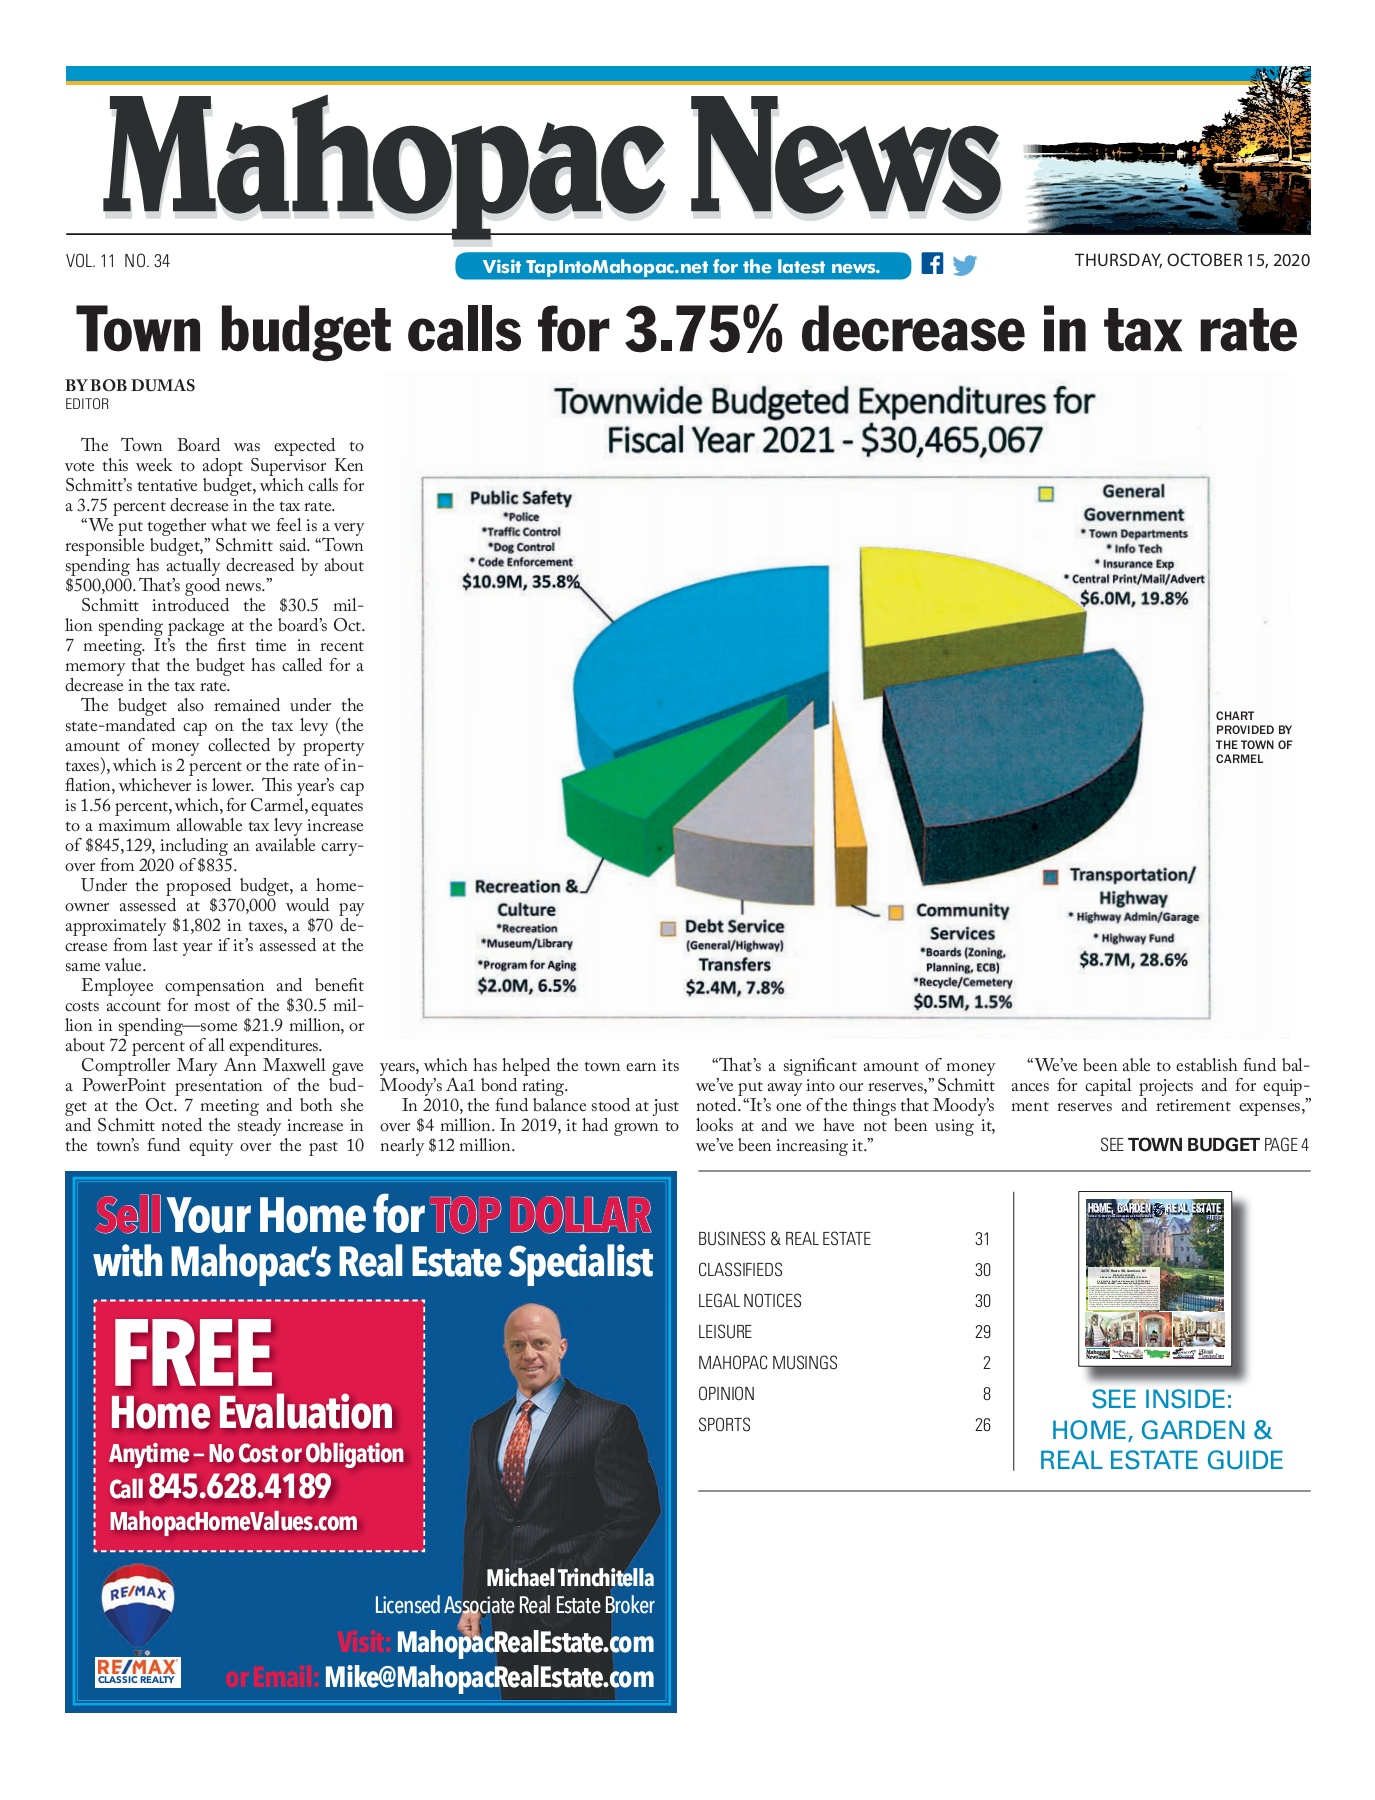 Mahopac News 10 15 20 Flip Ebook Pages 1 32 Anyflip Anyflip